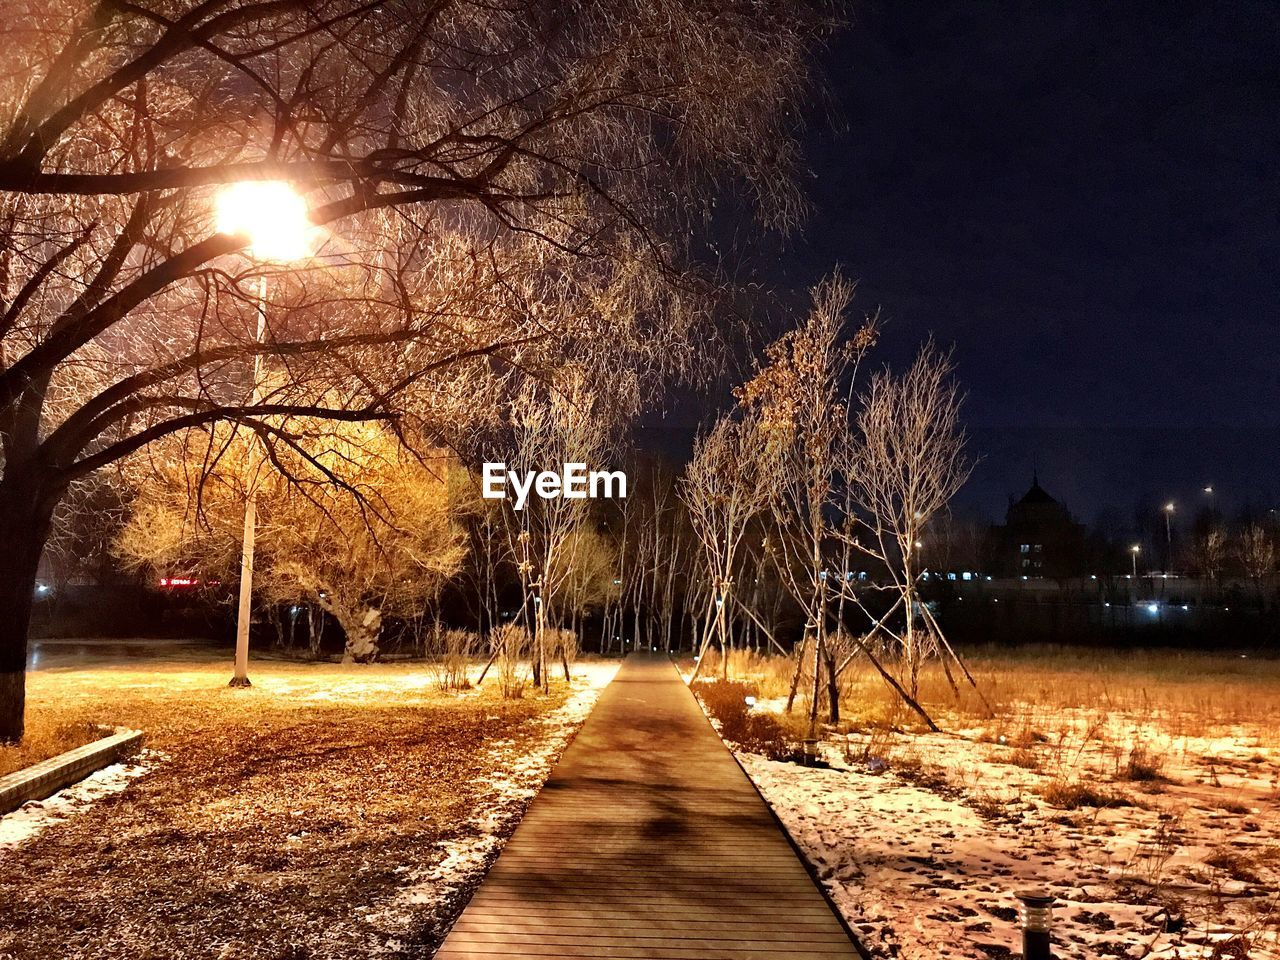 night, tree, illuminated, bare tree, outdoors, the way forward, street light, nature, winter, cold temperature, no people, beauty in nature, branch, snow, scenics, sky